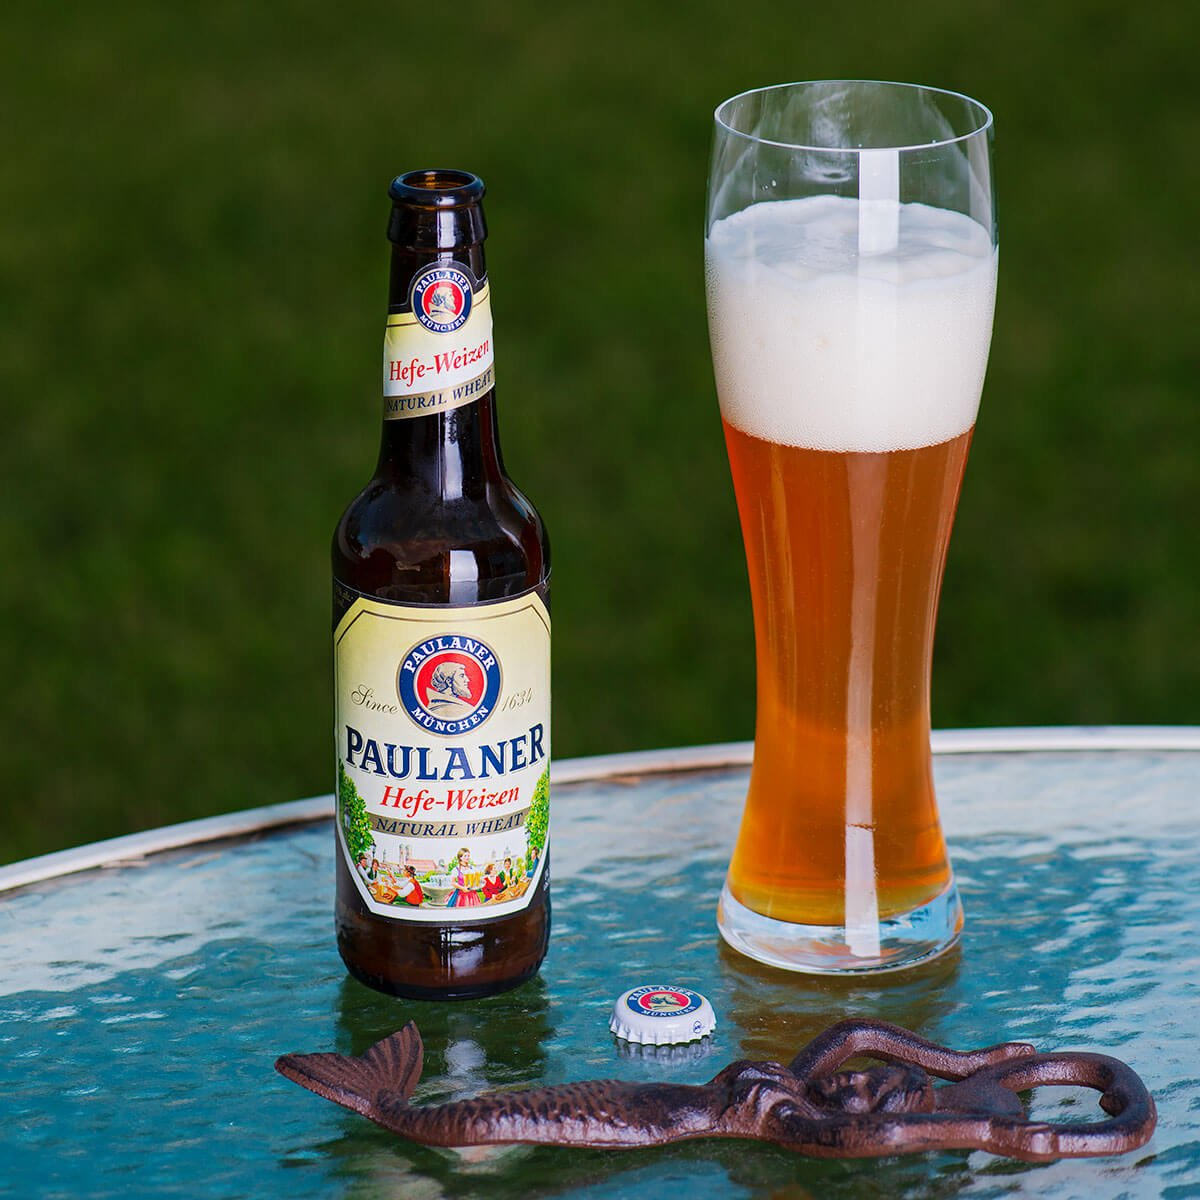 Hefe-Weizen is a German Hefeweizen by Paulaner Brauerei München that balances wheat bread and banana with noble hops and clove.